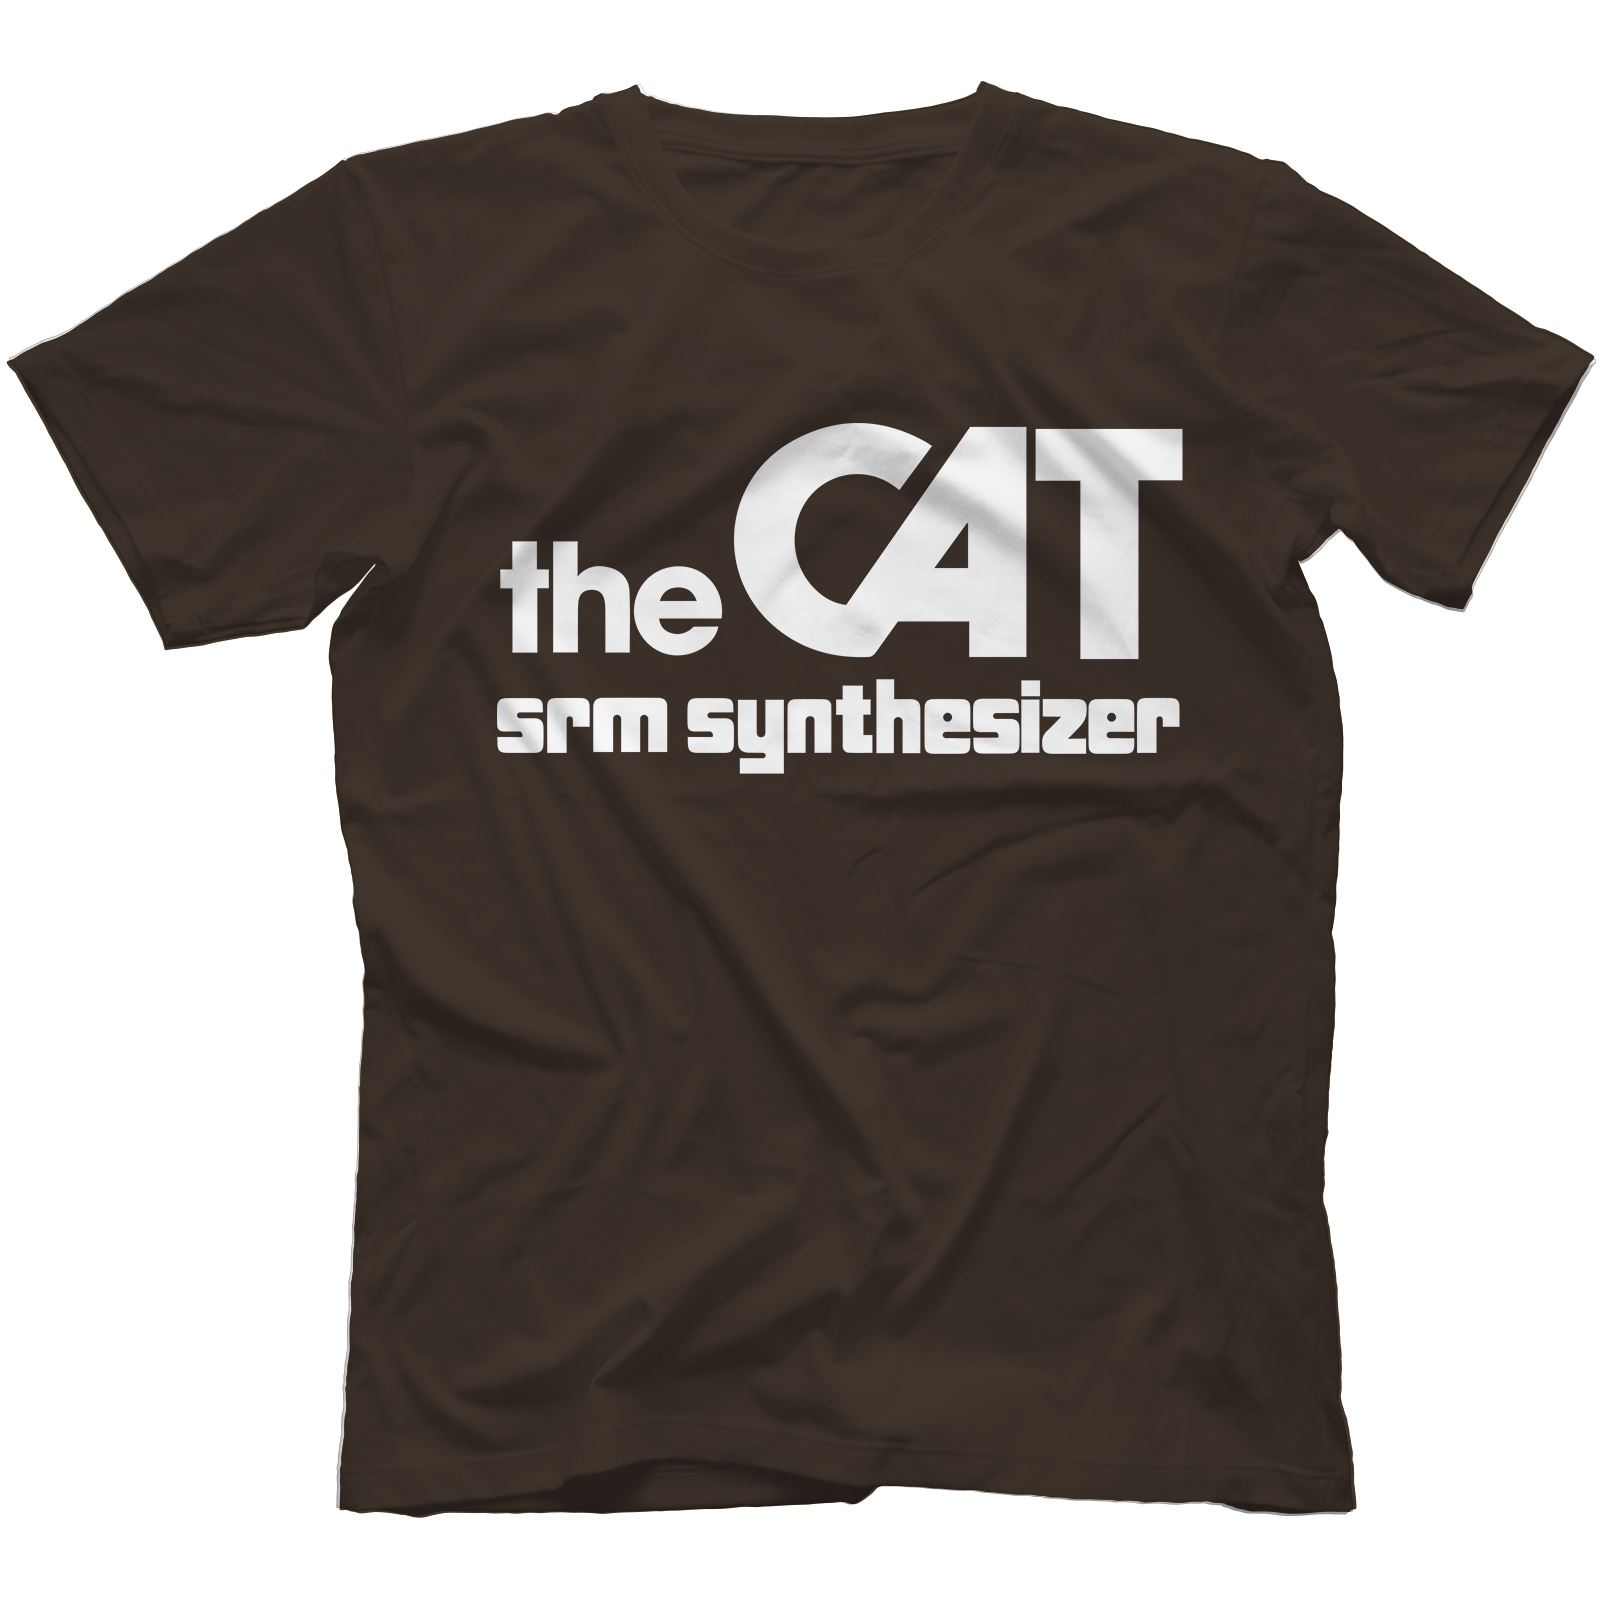 The-Cat-SRM-Synthesiser-T-Shirt-100-Cotton-Retro-Analog-Arp-Odyssey Indexbild 16